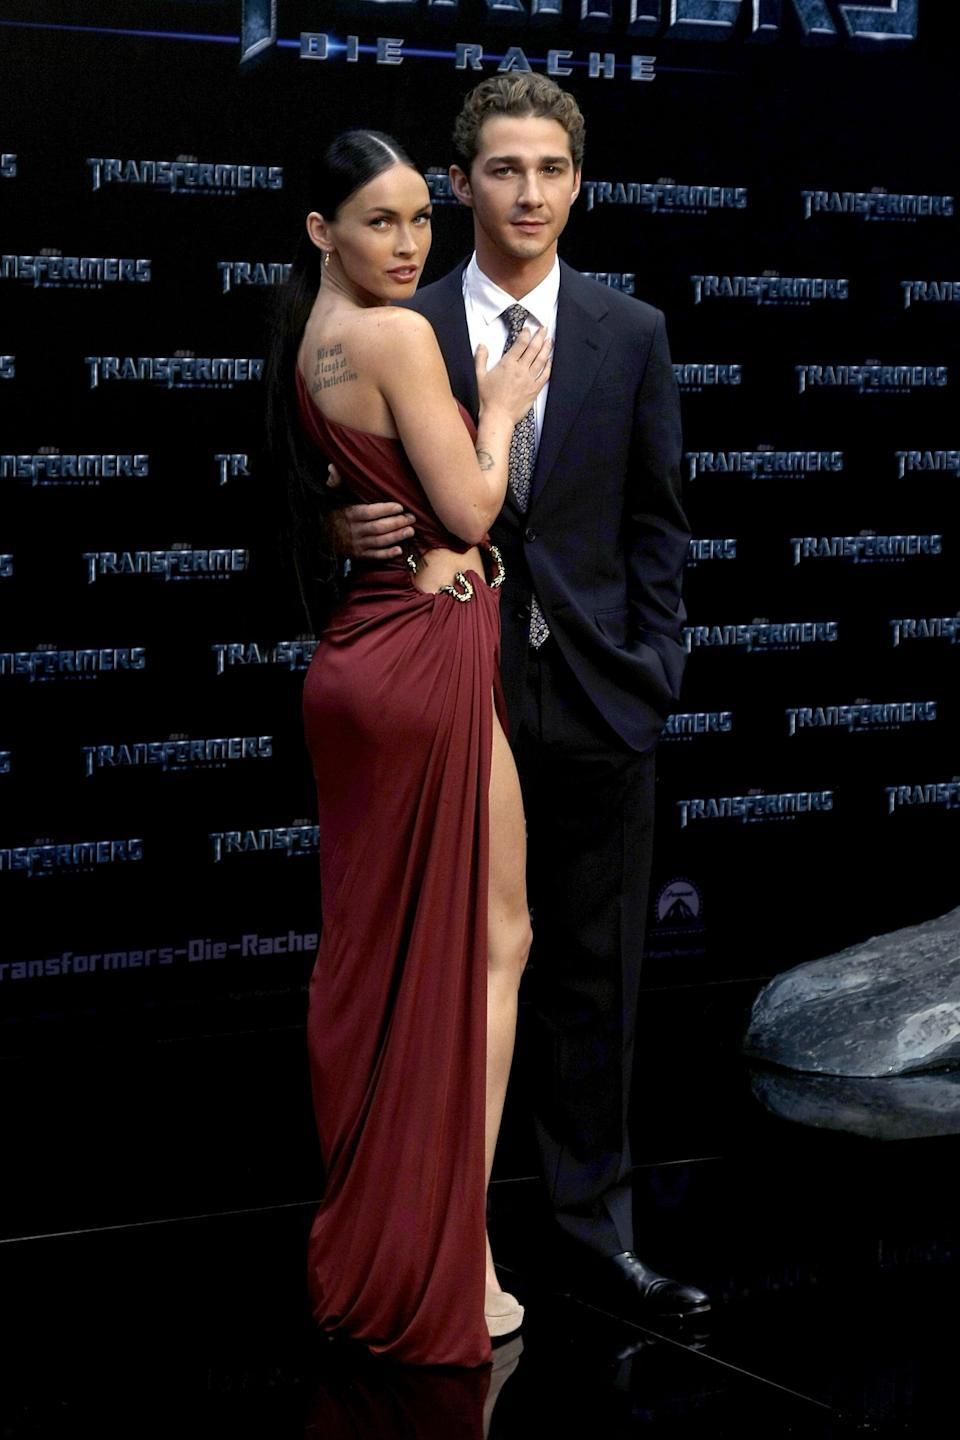 """<p>During one of Megan and Brian's breakups, there were rumors that Megan was romantically involved with her <strong>Transformers</strong> costar. Megan and Shia filmed <strong>Transformers</strong> in 2007 and a sequel in 2009. In an interview with <strong>Details</strong> magazine in 2011, Shia confirmed that <a href=""""https://www.huffpost.com/entry/megan-fox-dated-shia-labeouf_n_5c015702e4b0d04f48b3a95f"""" class=""""link rapid-noclick-resp"""" data-ylk=""""slk:he and Megan were once romantic"""">he and Megan were once romantic</a>. """"Look, you're on the set for six months with someone who's rooting to be attracted to you, and you're rooting to be attracted to them,"""" he explained. """"I never understood the separation of work and life in that situation. But the time I spent with Megan was our own thing.""""</p> <p>However, it wasn't until 2018 that <a href=""""https://www.popsugar.com/celebrity/Megan-Fox-Confirms-Relationship-Shia-LaBeouf-45538541"""" class=""""link rapid-noclick-resp"""" rel=""""nofollow noopener"""" target=""""_blank"""" data-ylk=""""slk:Megan finally confirmed the rumors herself"""">Megan finally confirmed the rumors herself</a> on Andy Cohen's <strong>Watch What Happens Live!</strong>. When asked if she and Shia ever dated, Megan replied, """"I mean, I would confirm it was romantic.""""</p>"""